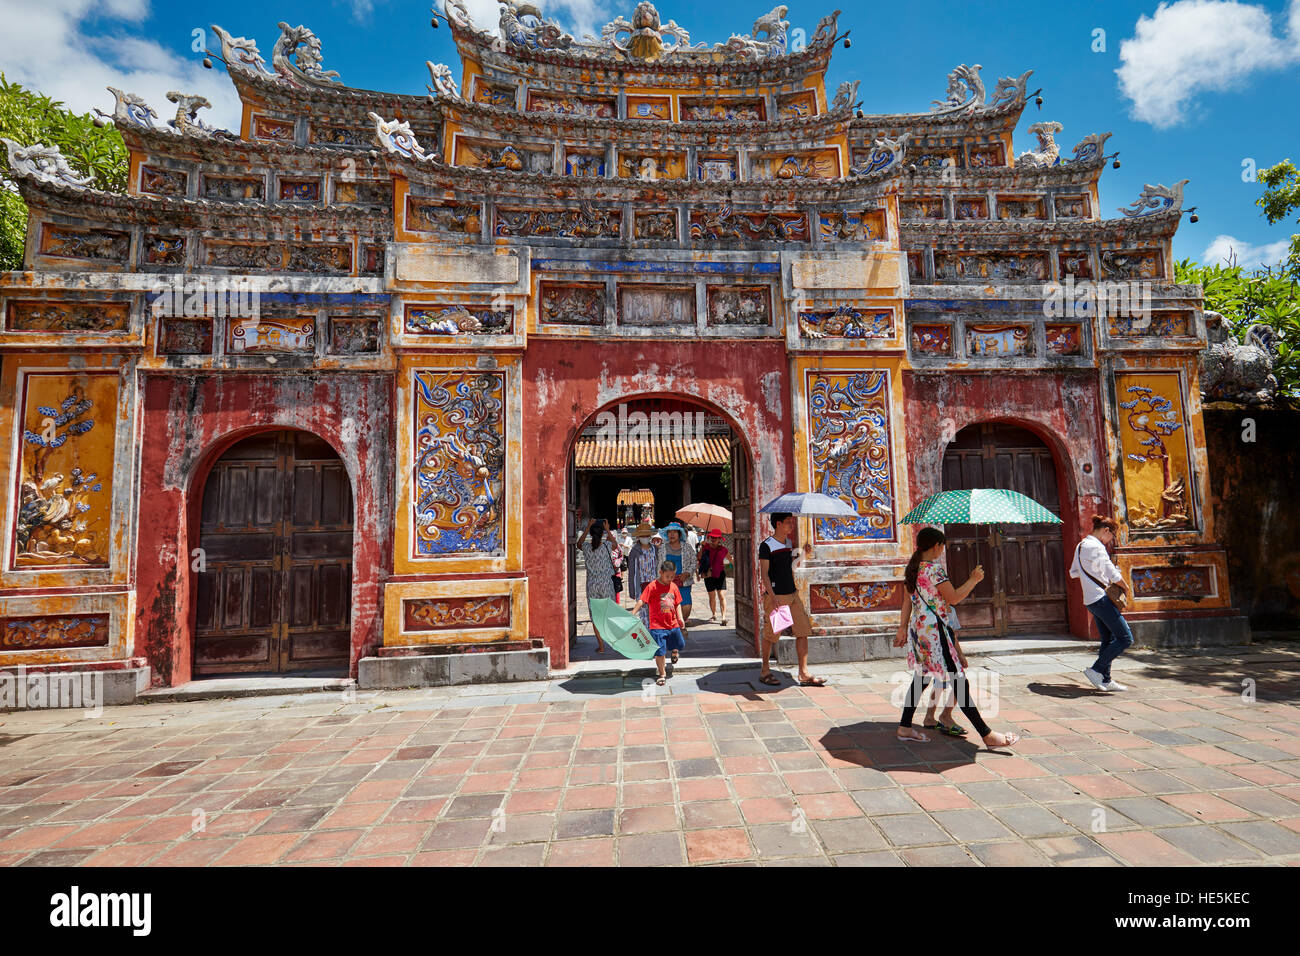 People walking out of entrance gate to The To Mieu Temple Compound. Imperial City (The Citadel), Hue, Vietnam. - Stock Image